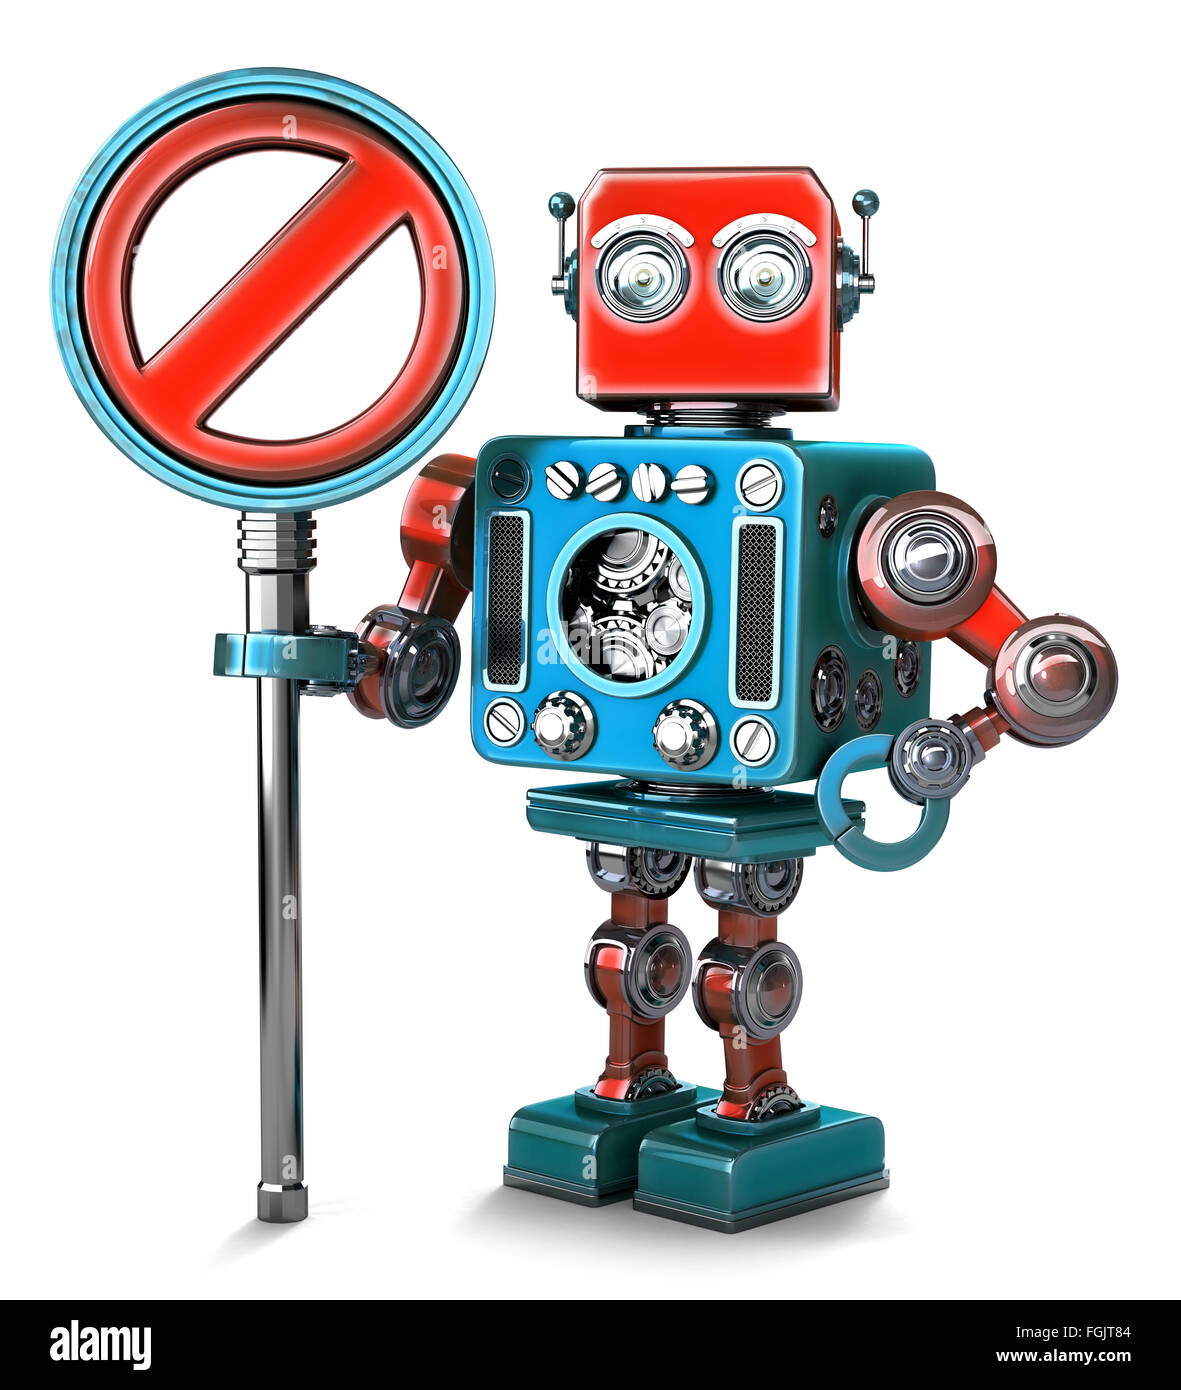 Retro Robot with NO ENTRY sign. Isolated over white. Contains clipping path - Stock Image